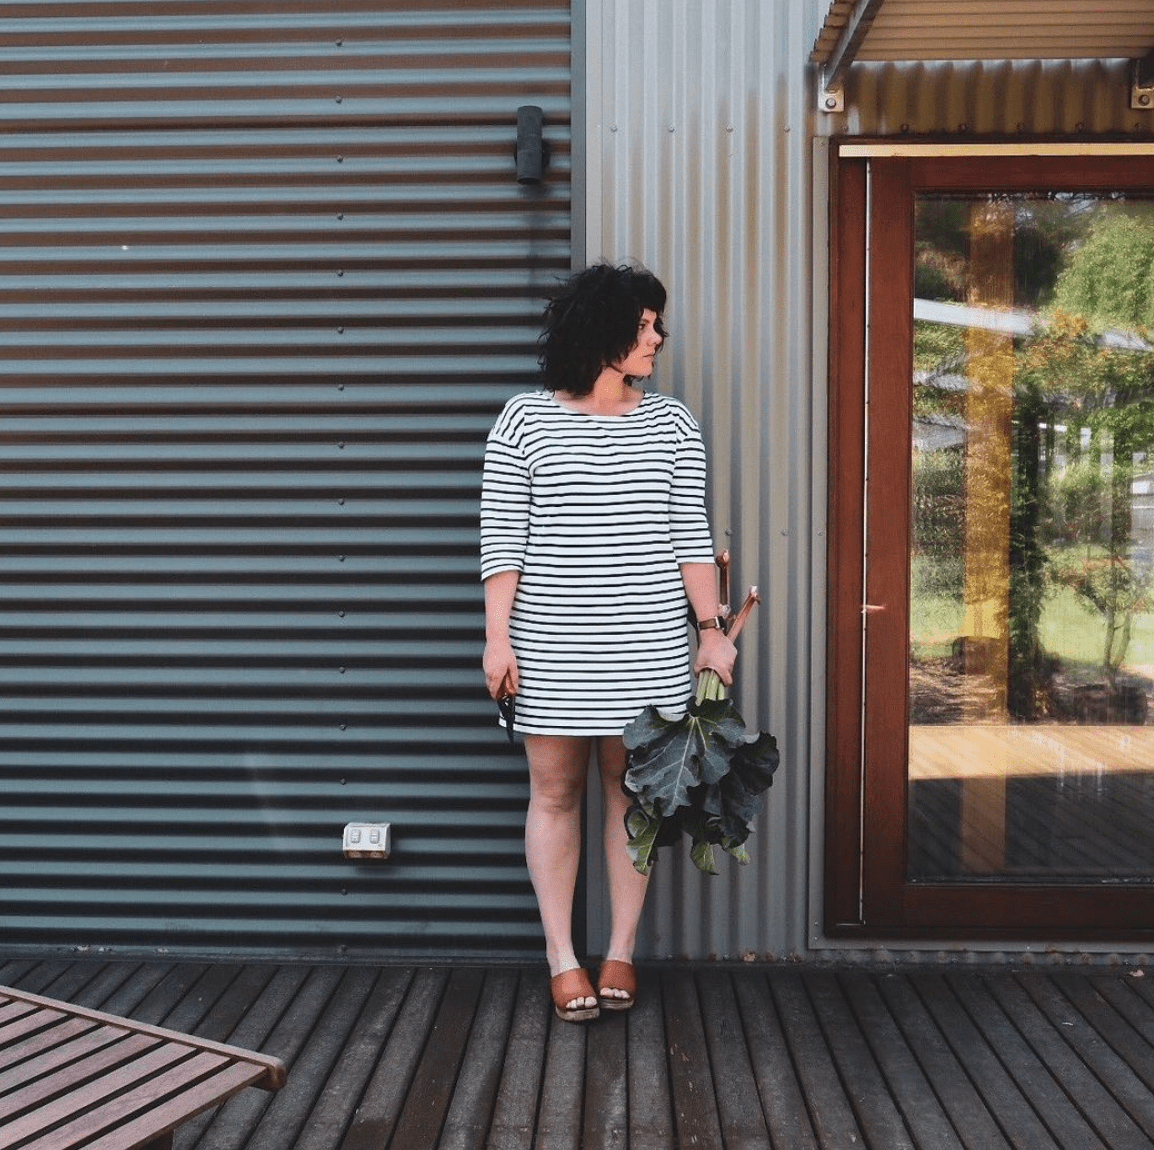 personal style habits